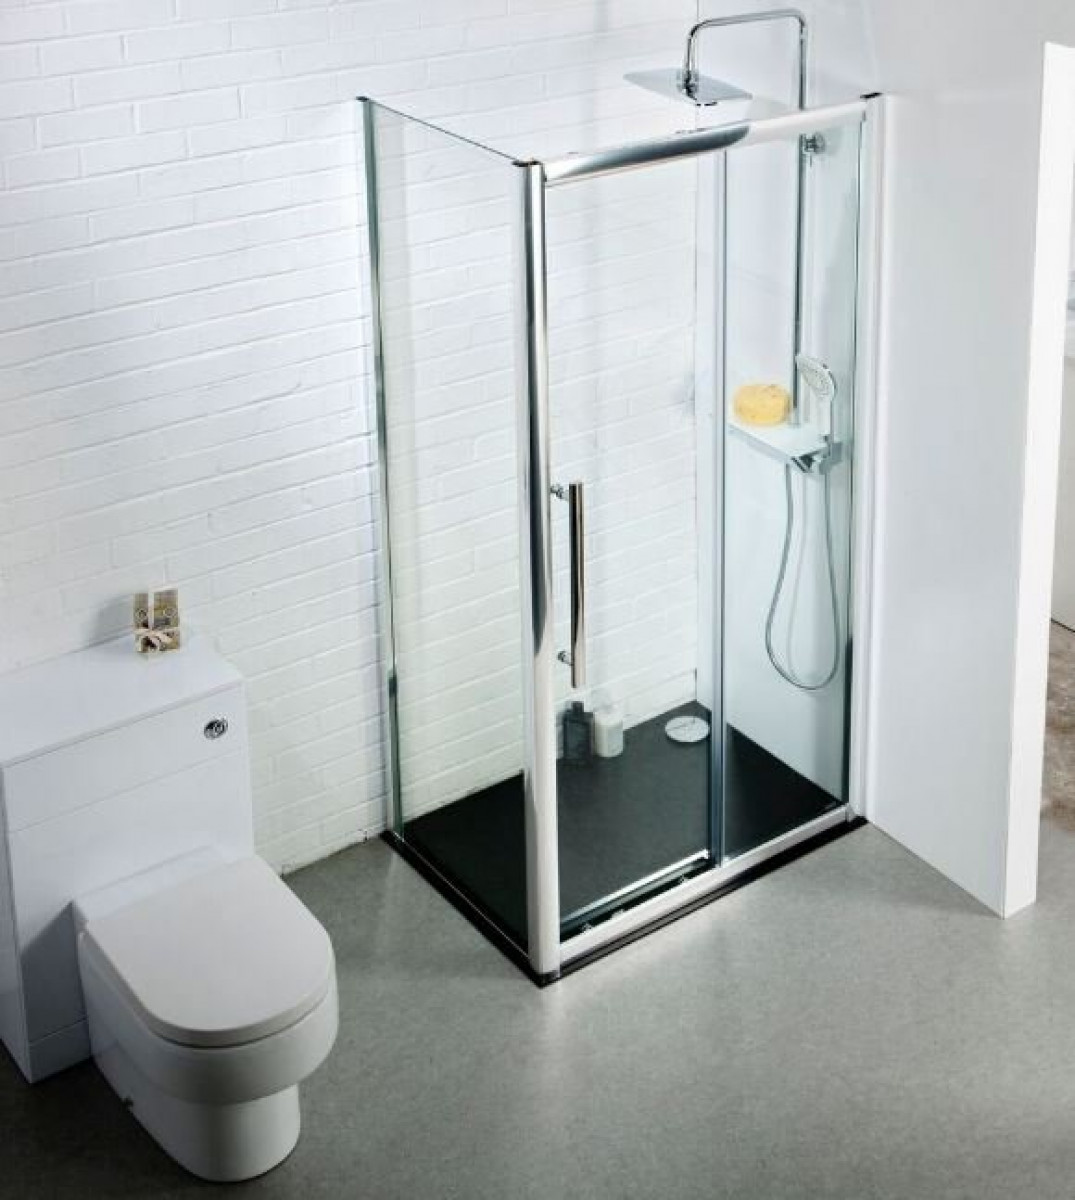 Ajax i8 1200mm sliding shower door for 1200mm shower door sliding